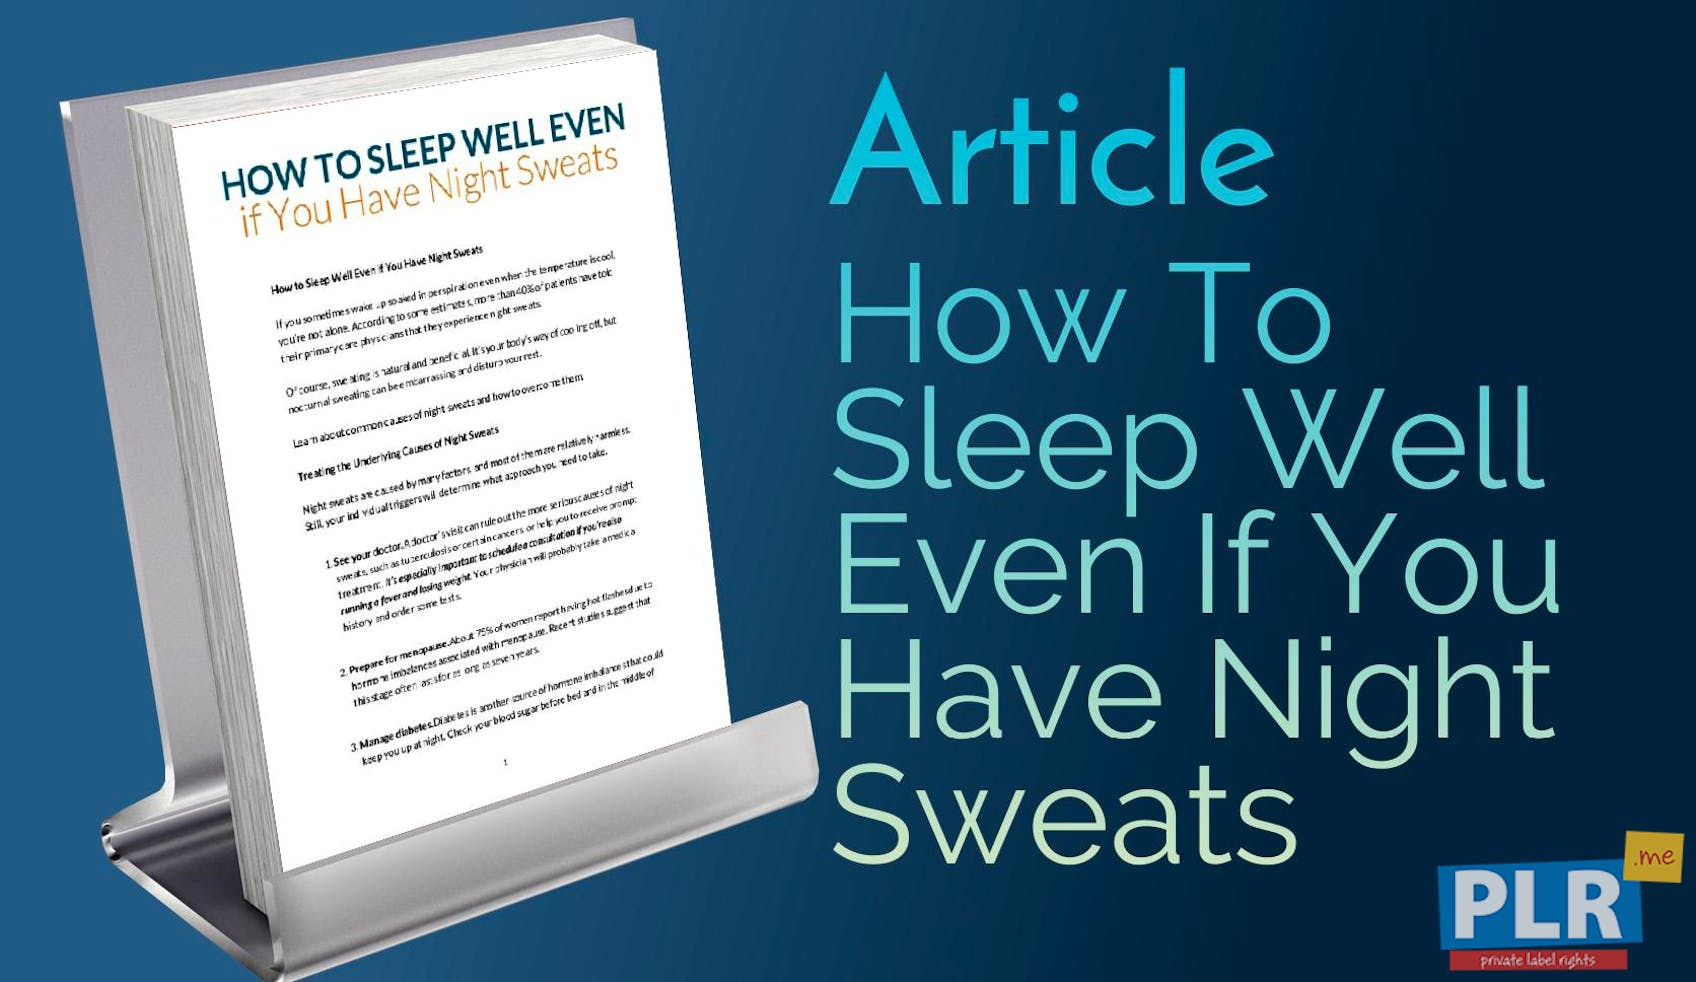 How To Sleep Well Even If You Have Night Sweats